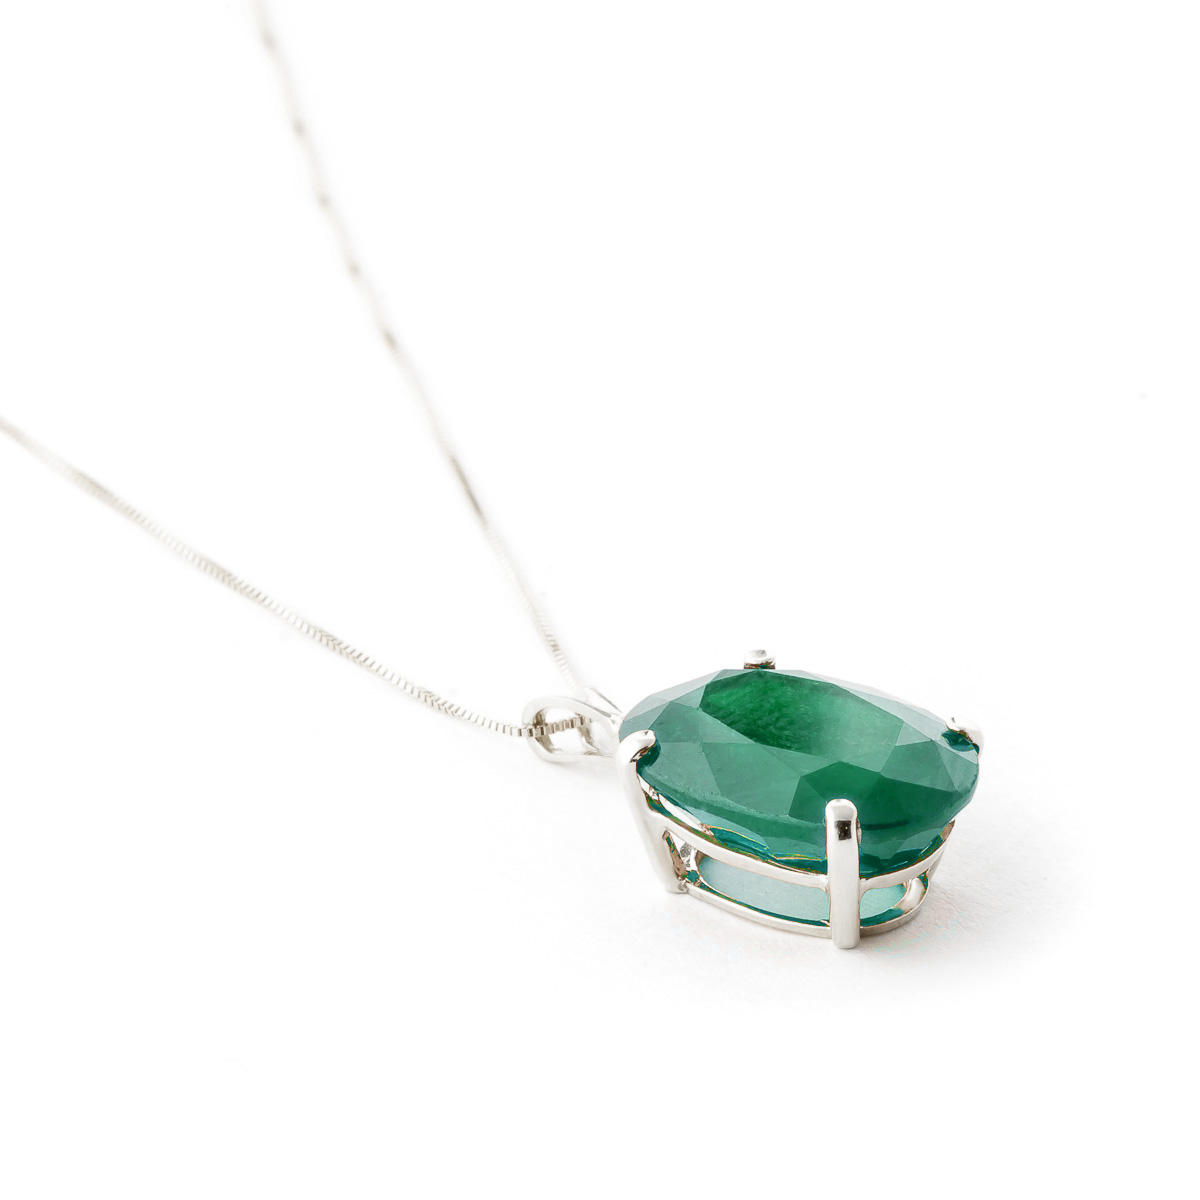 Oval Cut Emerald Pendant Necklace 6.5ct in 9ct White Gold